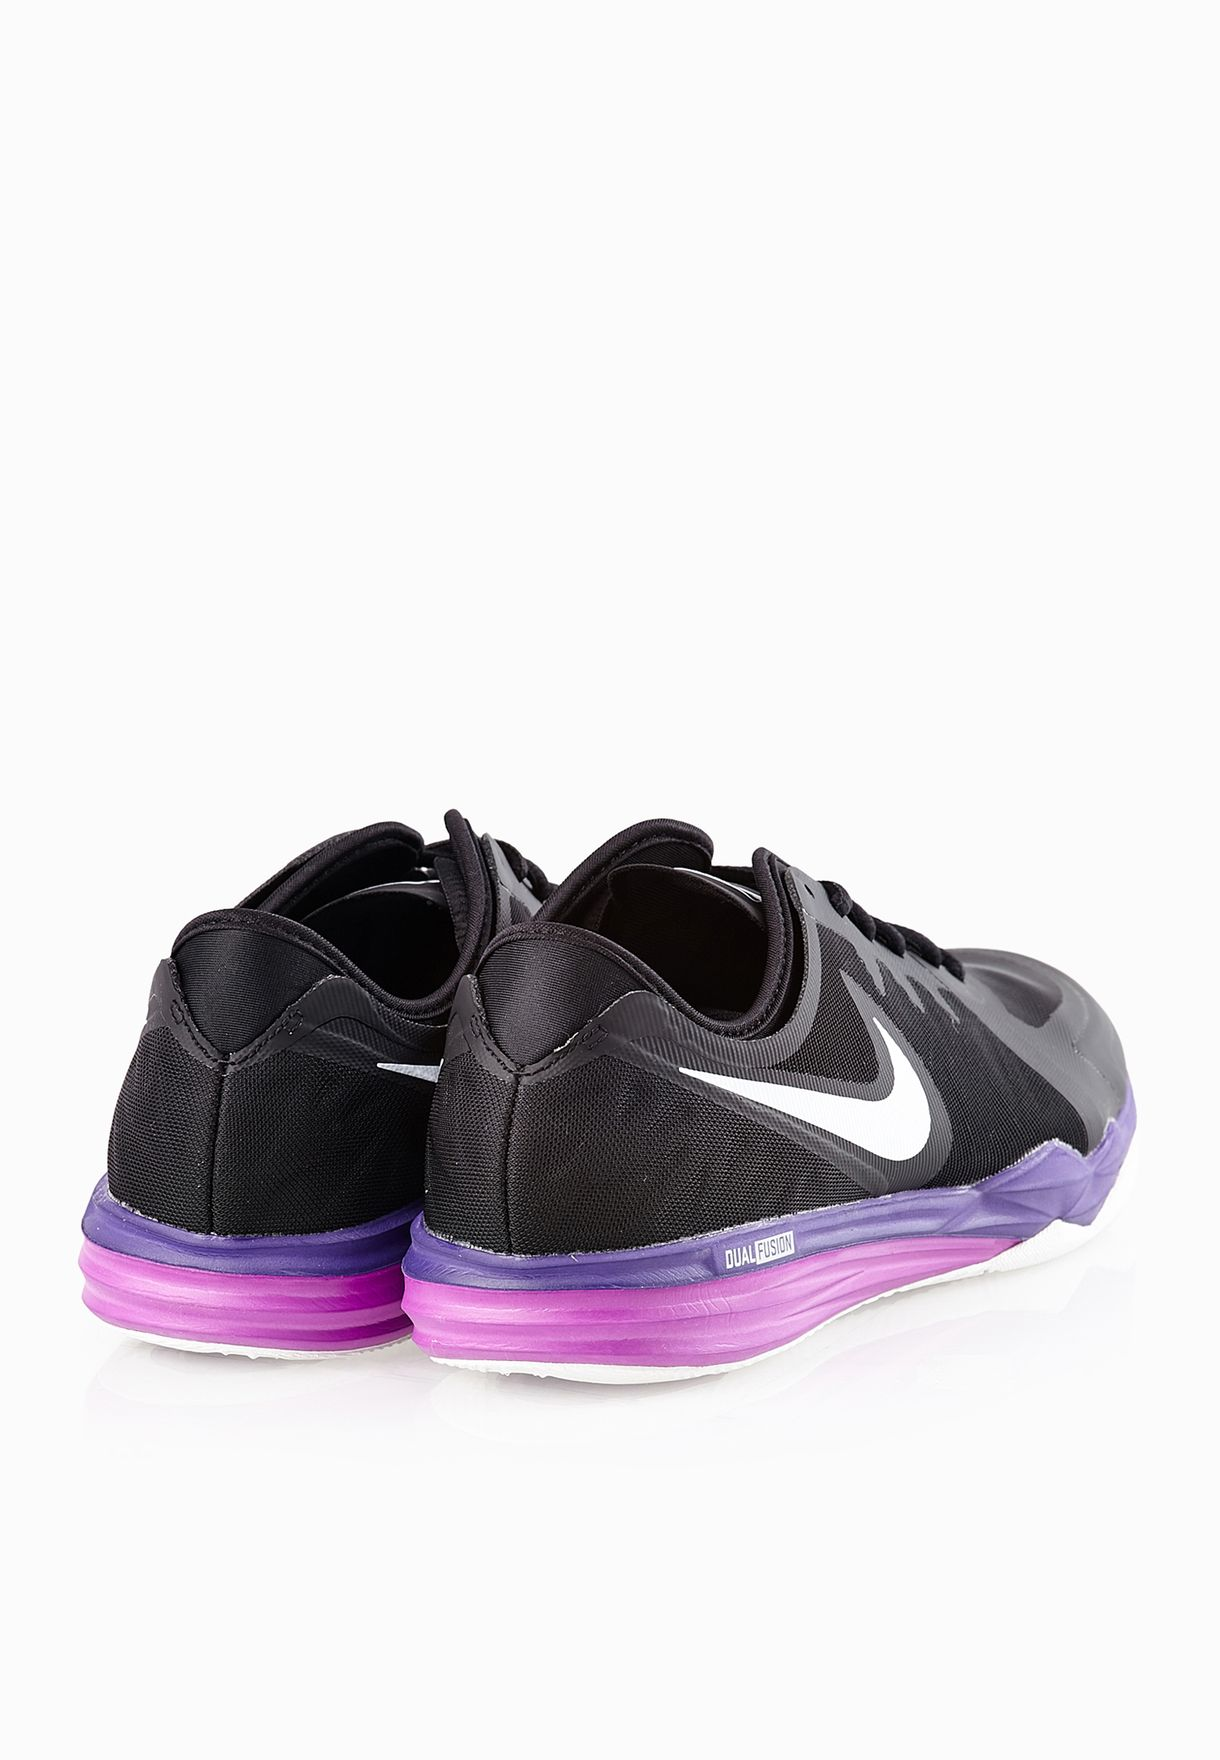 7aa2f7ef32da Shop Nike black Dual Fusion Tr 3 704940-012 for Women in Saudi ...